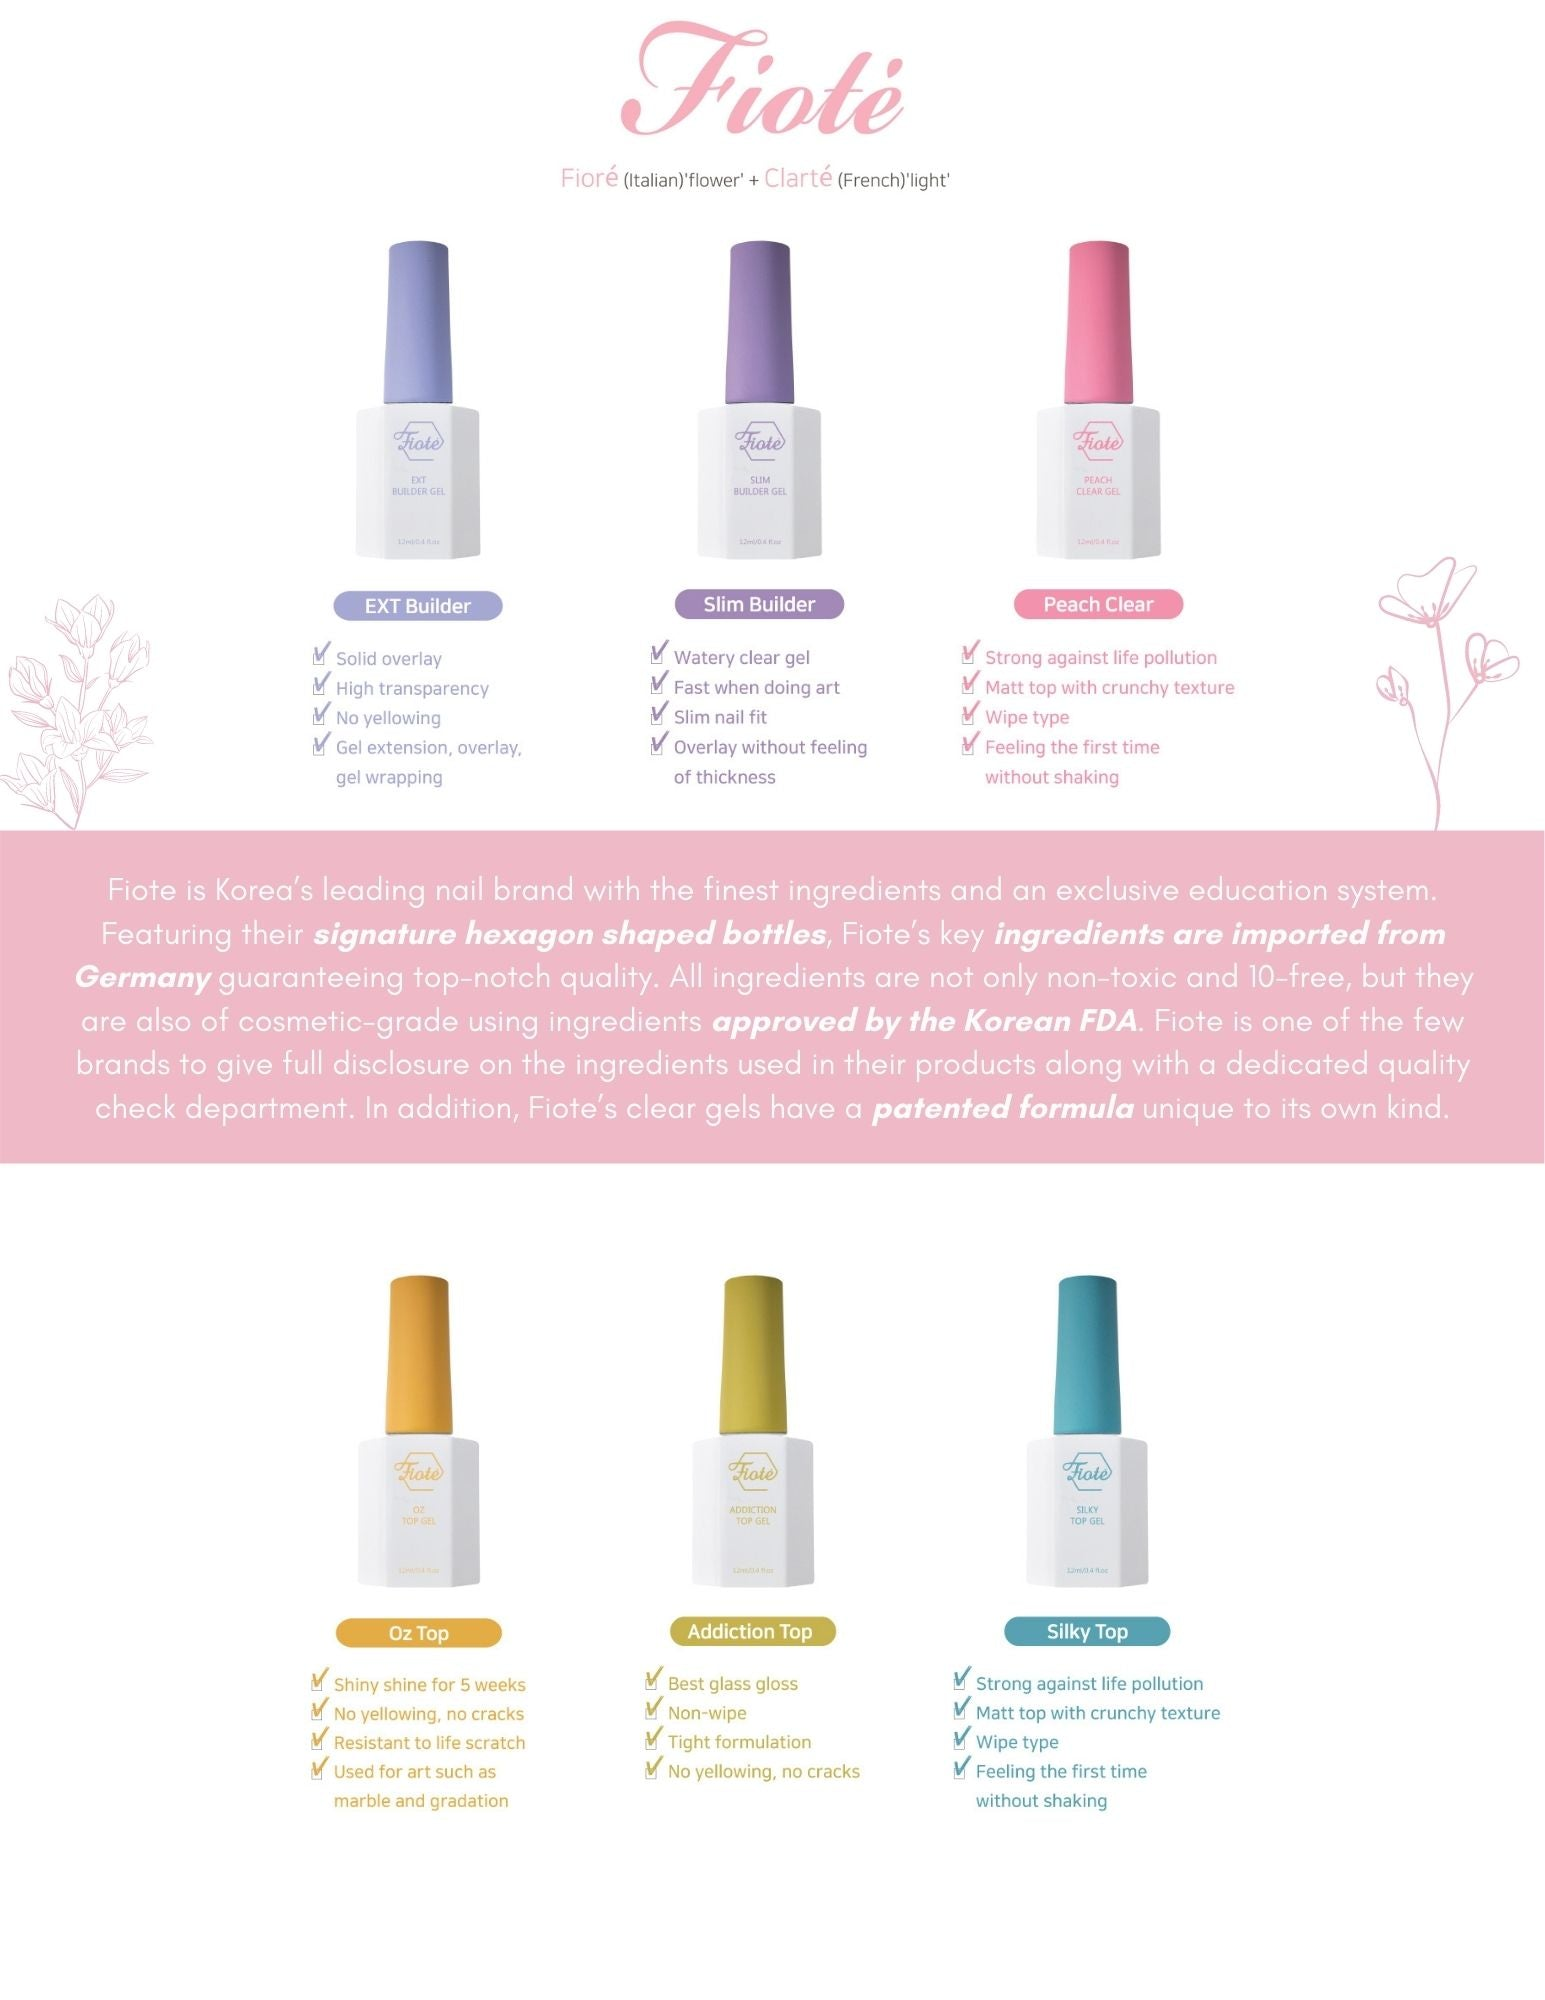 F Gel is based in South Korea and known as Asia's most innovative nail manufacturer, creating professional-quality, elegantly-packaged bottled polish that is as effective as potted gels. Its product development team is constantly bringing patent-pending ideas to life and setting forth trends in the nail industry. All gels are cosmetic grade (10-free), apply easily, and infused with the richest color pigmentation.